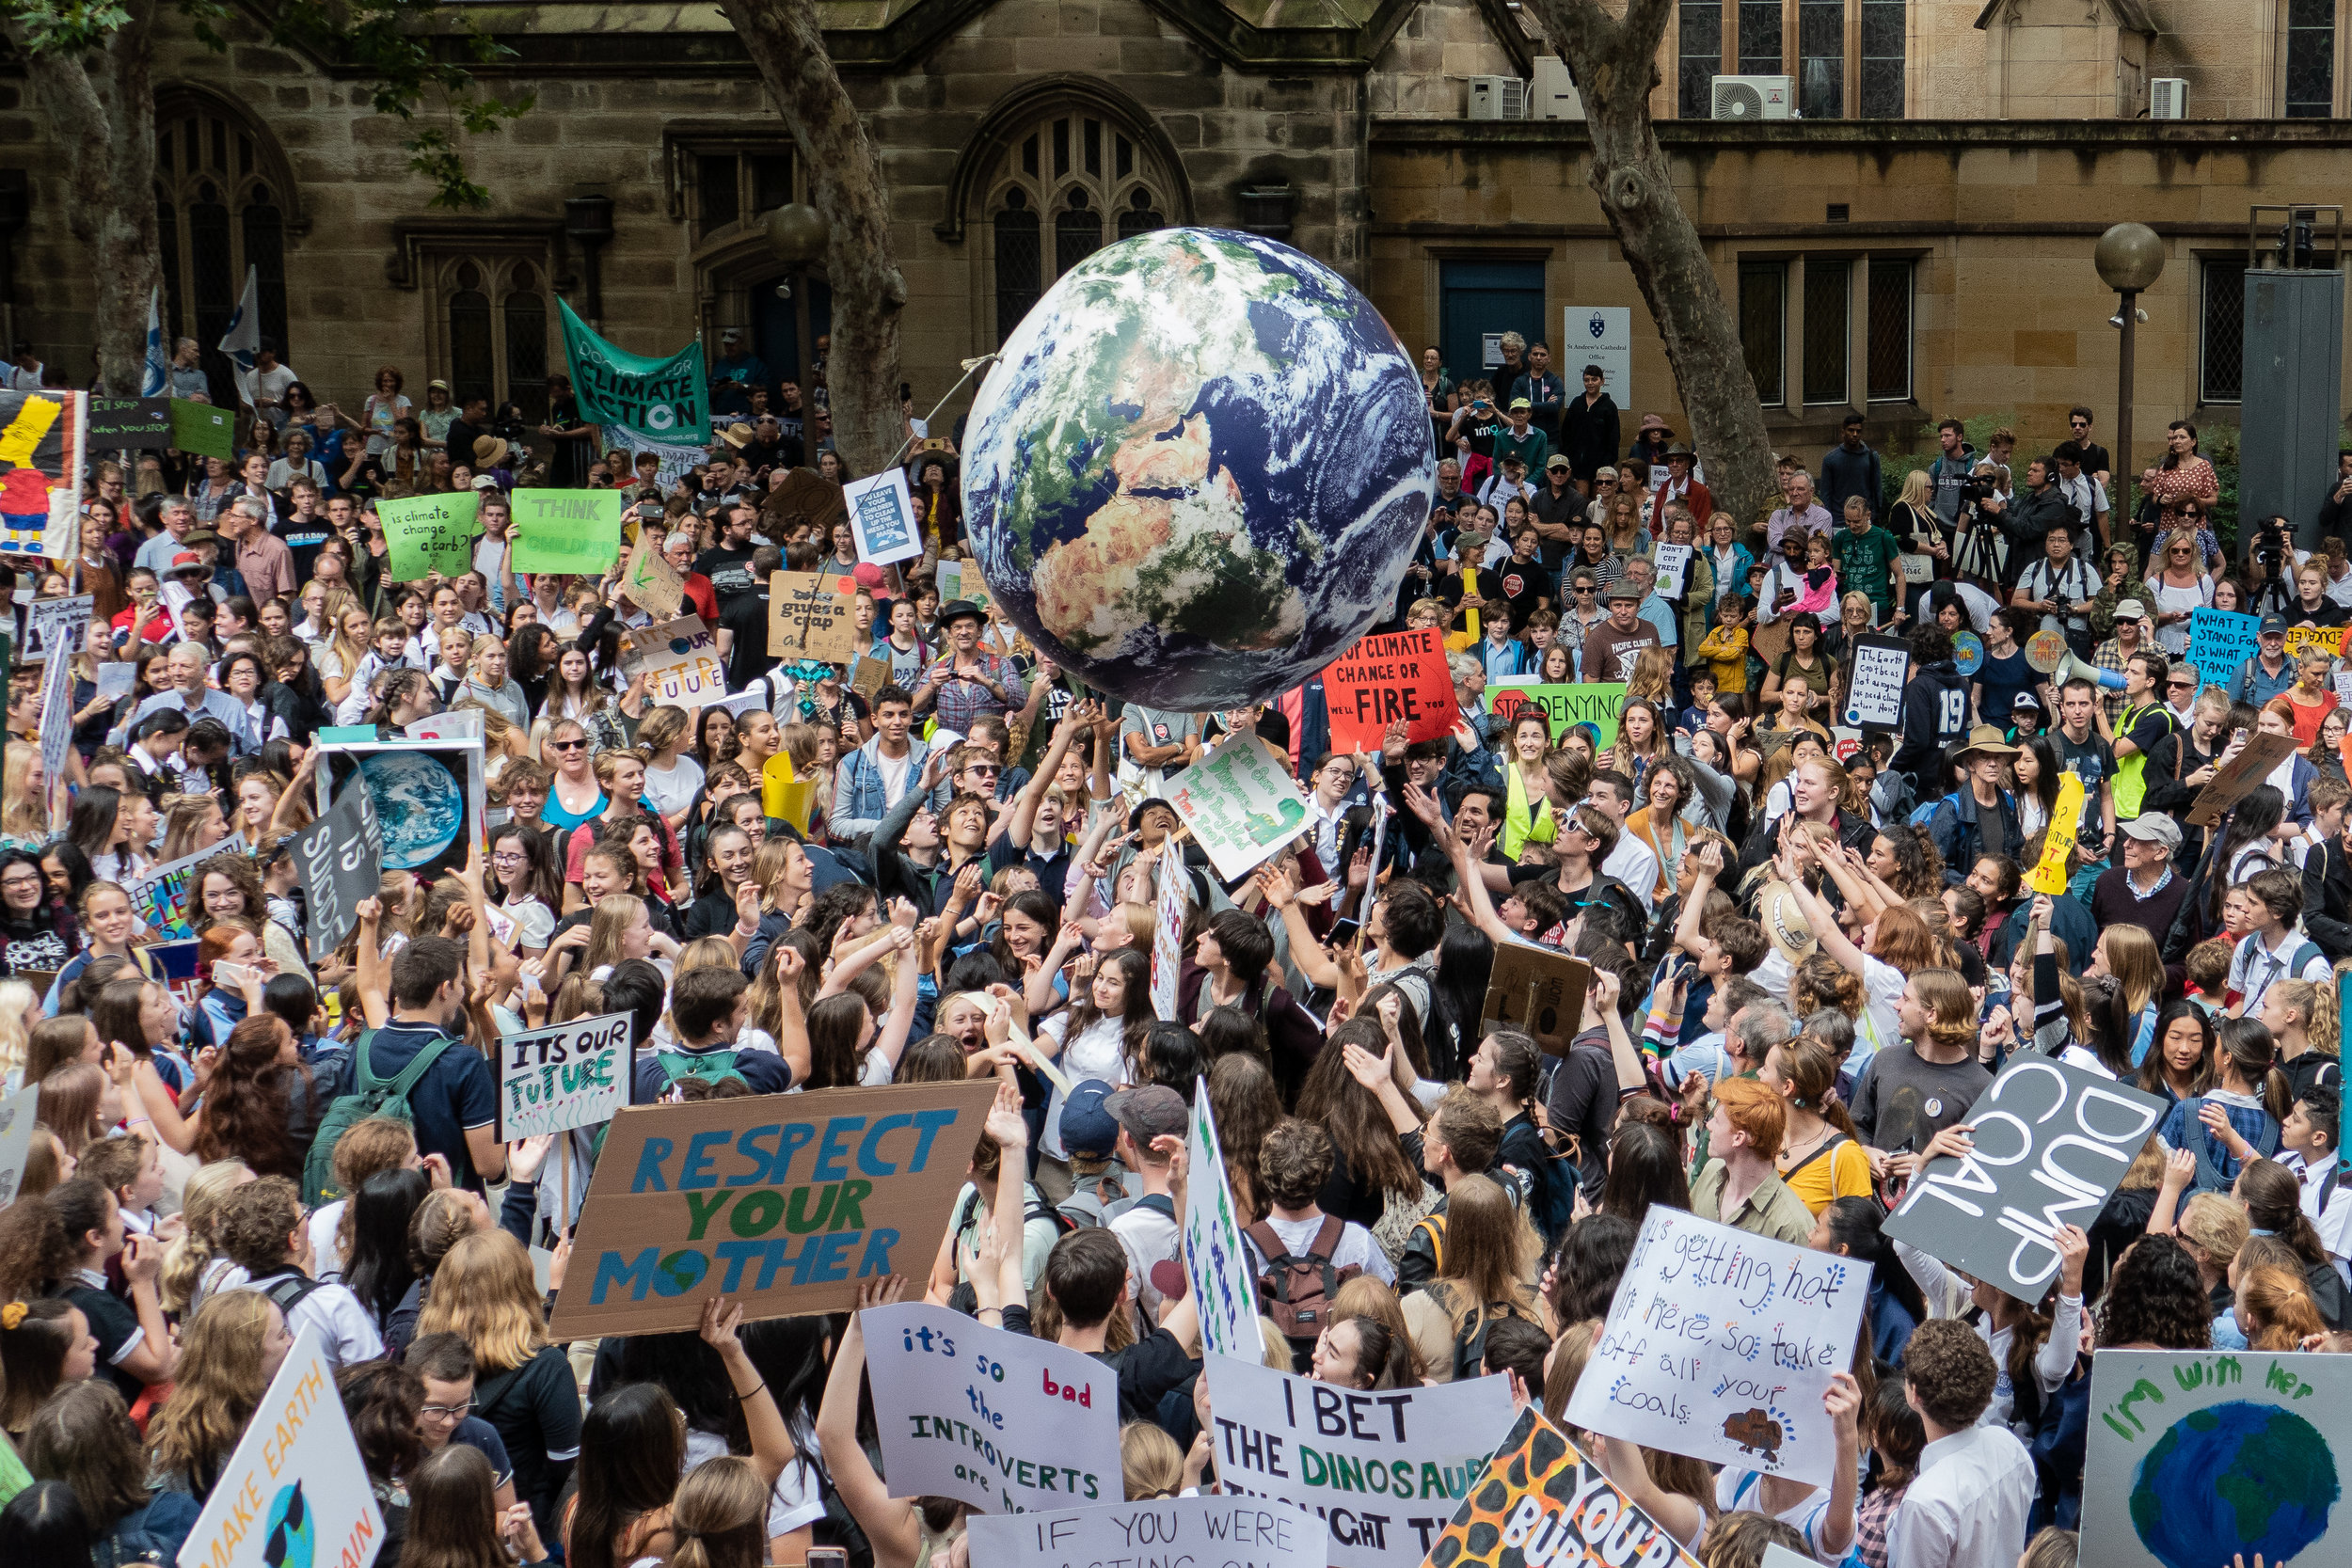 In Sydney, 20,000 Australian students joined the March 15, 2019, strike for climate action. Credit: Shutterstock.com